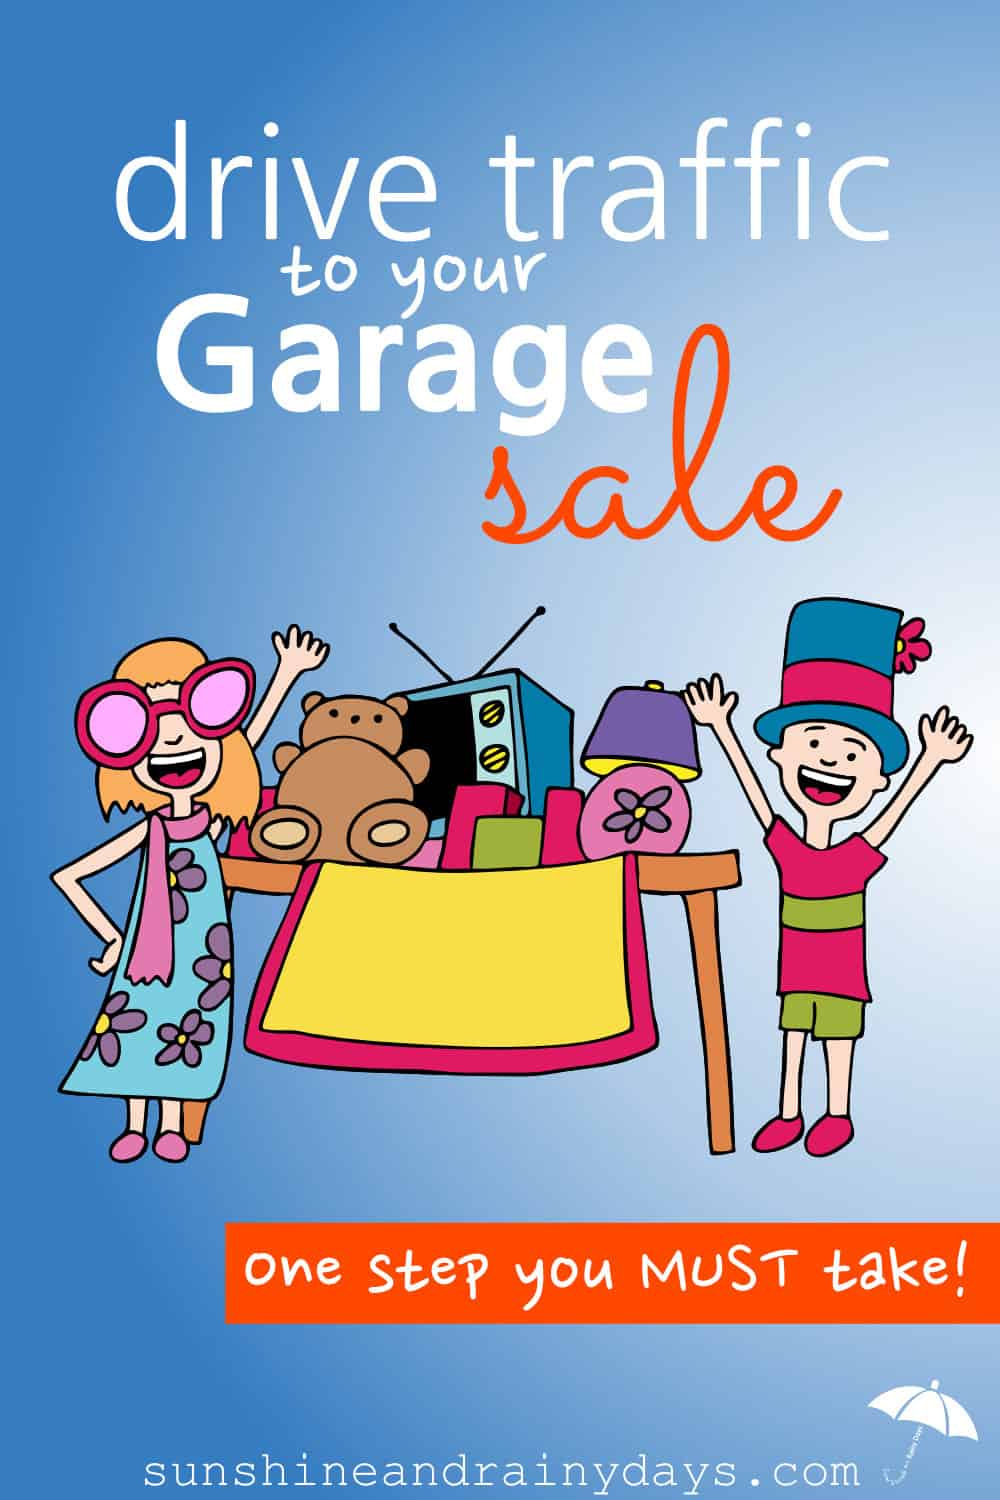 With fear and trepidation, they pressed forward to have the garage sale at their house. The house they thought no one would find. They did ONE thing in hopes it would drive traffic to their garage sale.